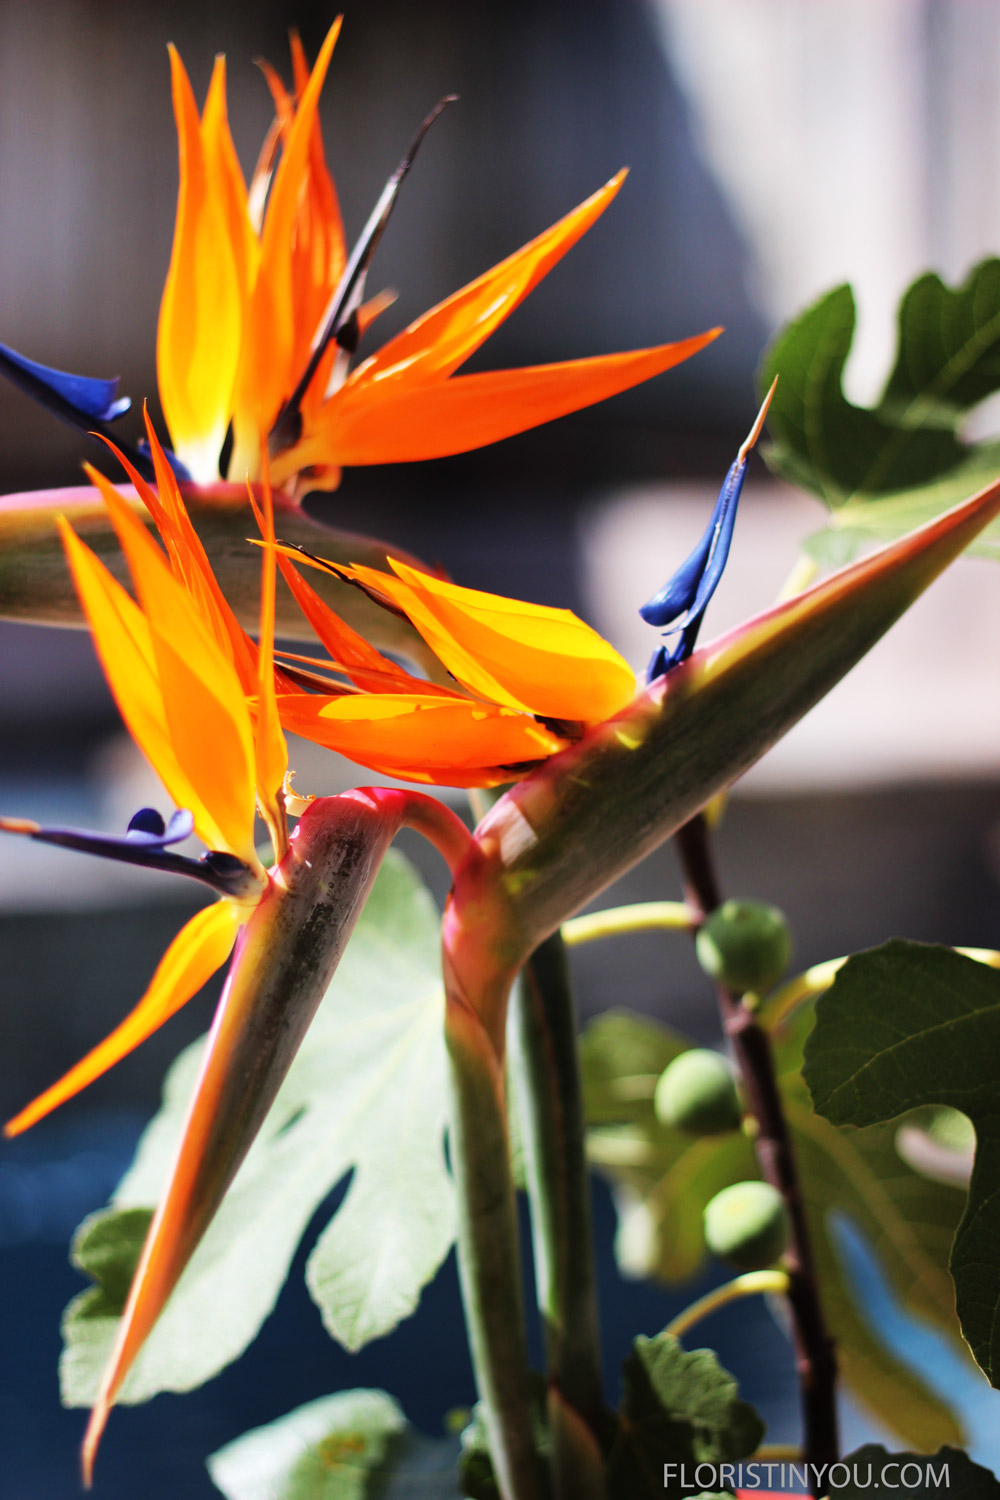 With these oranges and blues, this could be a study on complimentary colors. We will add these Bird of Paradise flowers next.